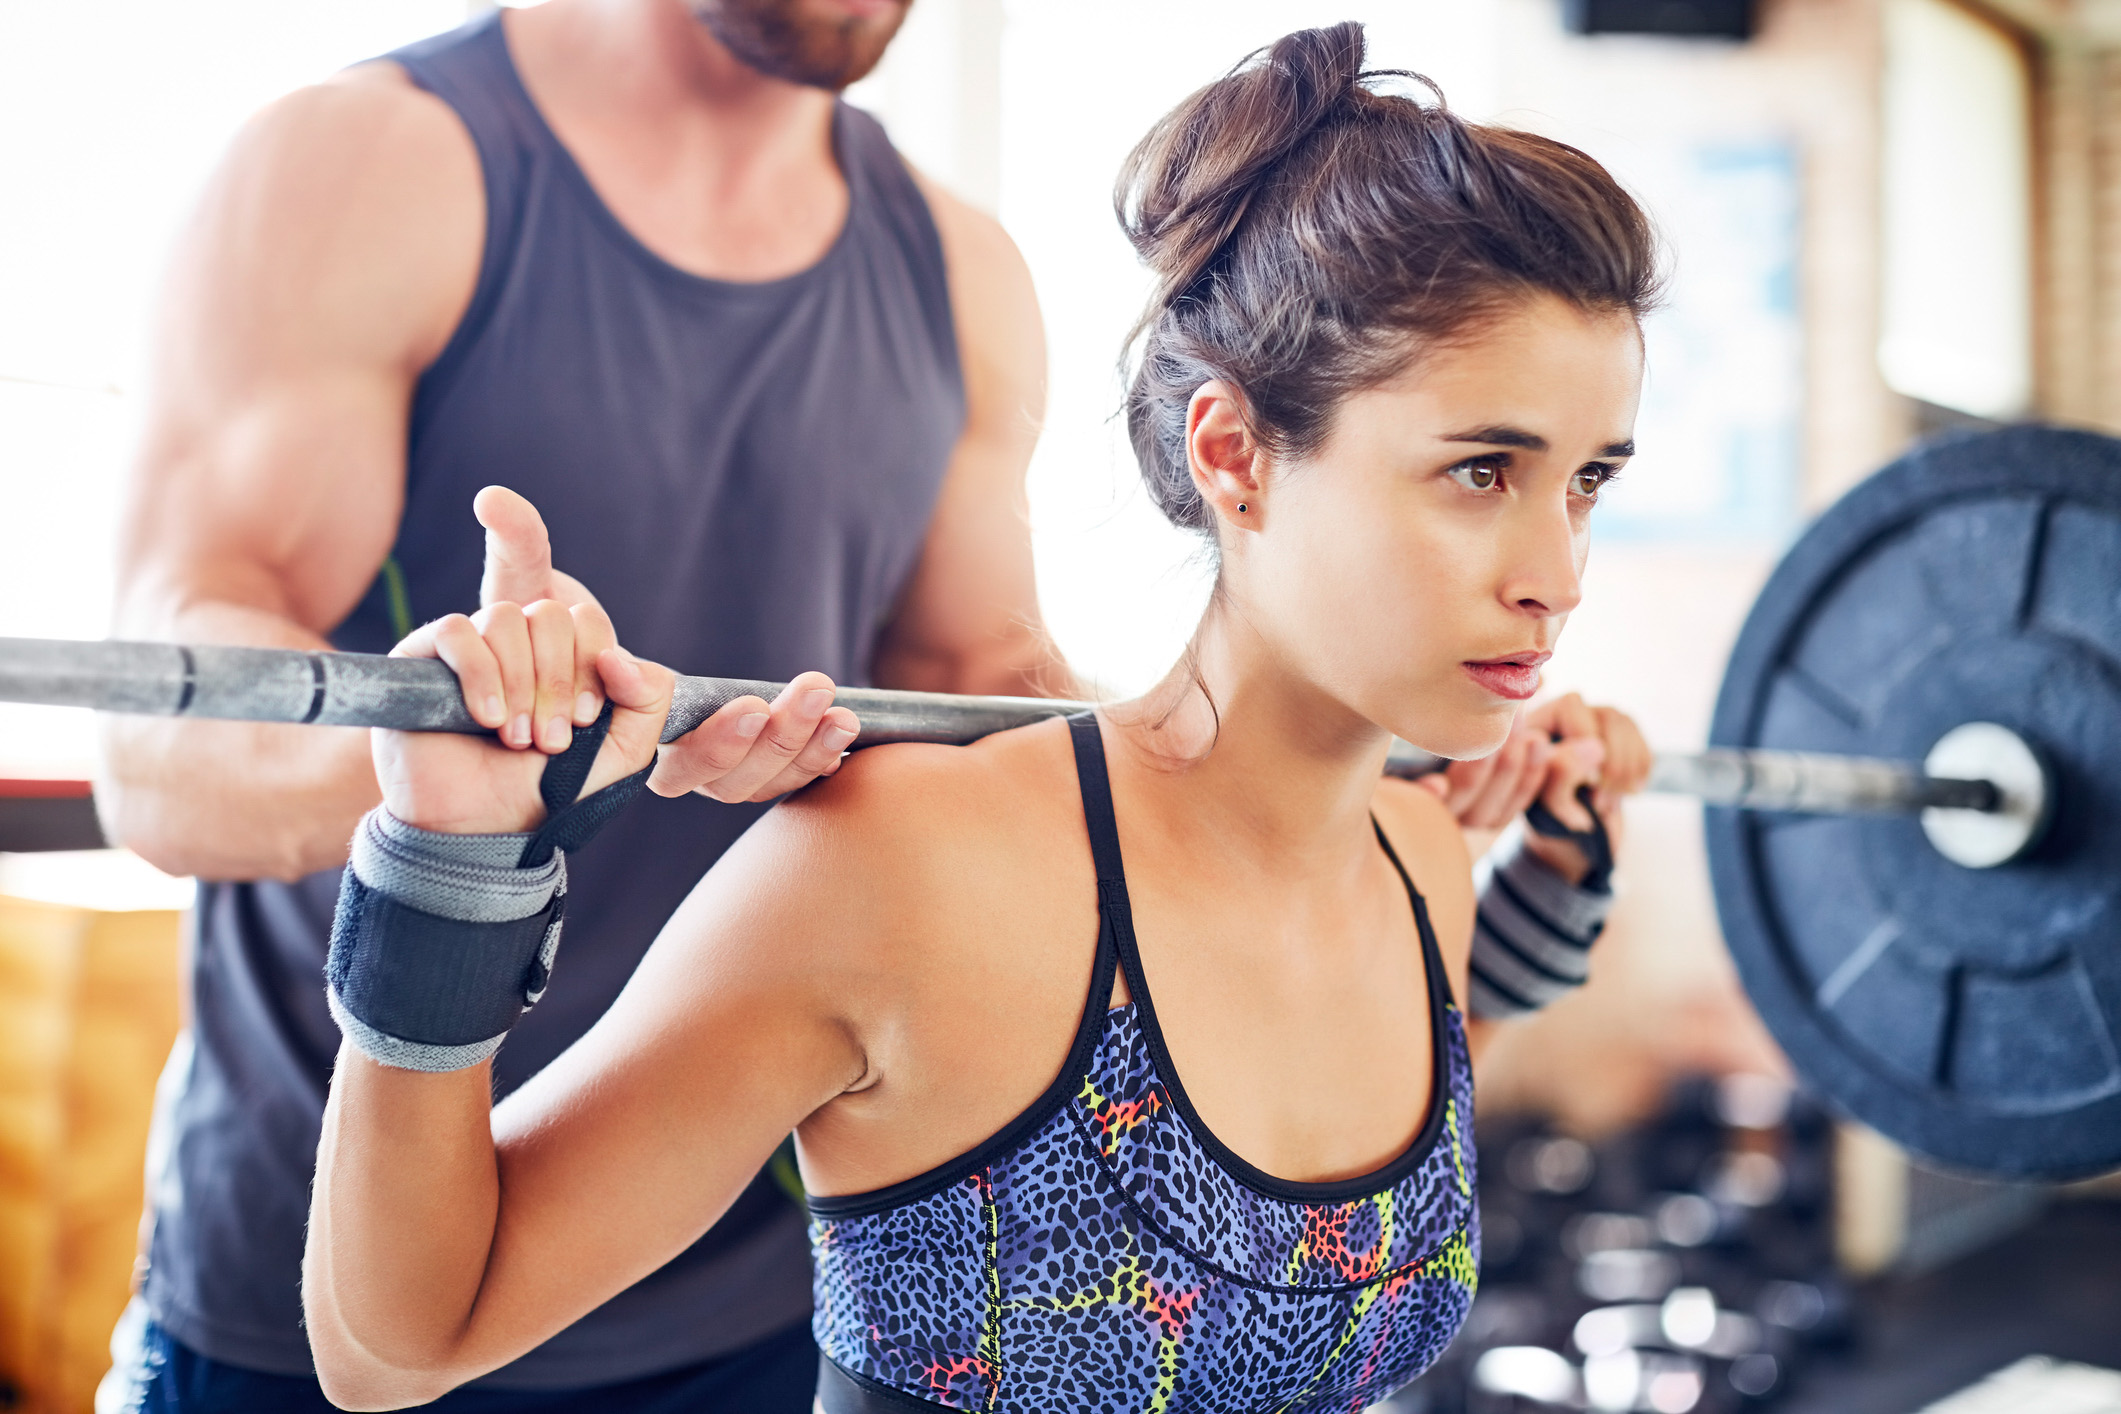 Close-up of young woman lifting barbell while trainer assisting her. She is looking away while exercising. Fitness instructor and female customer are in gym.